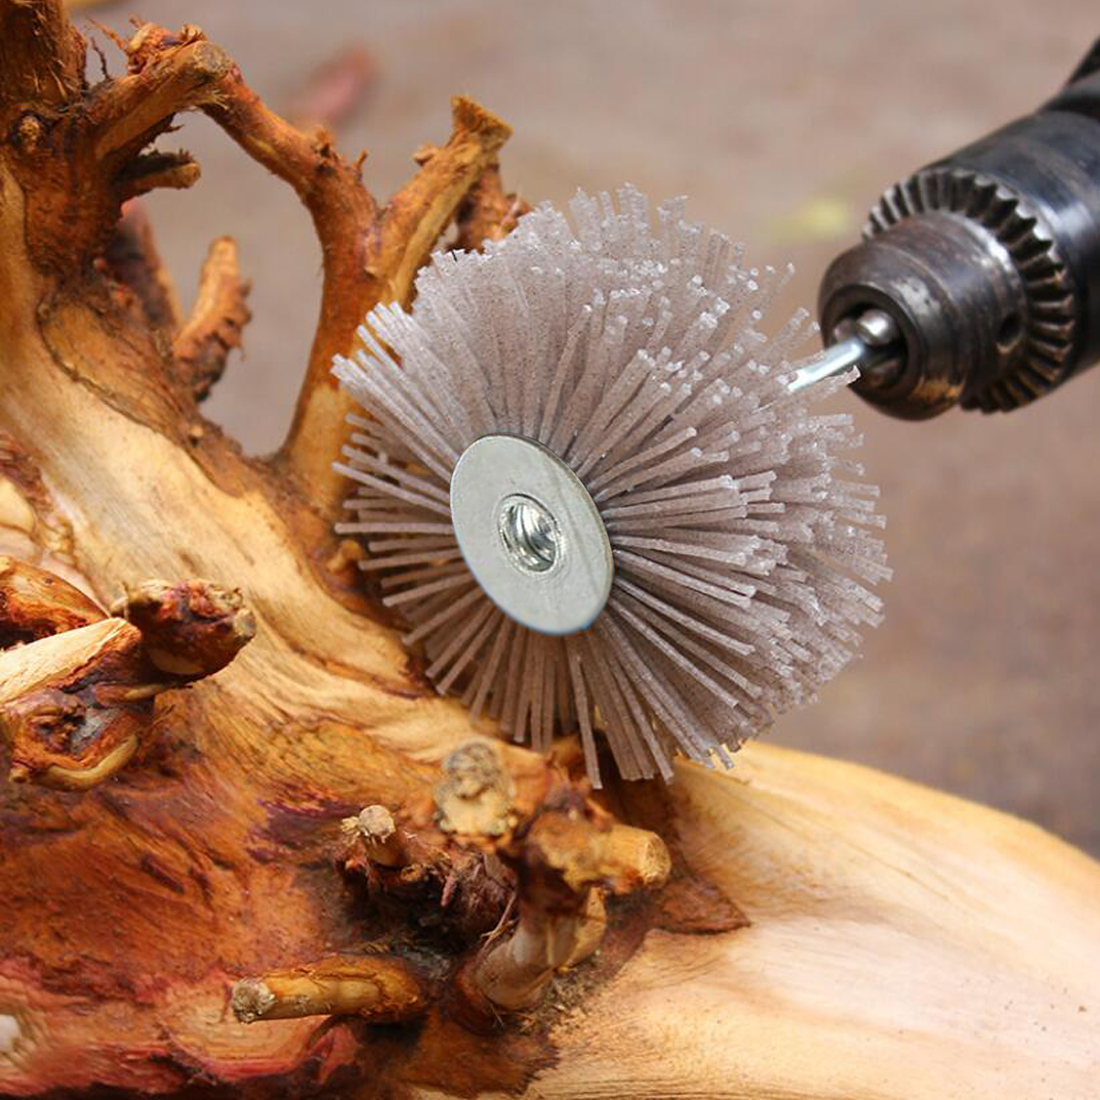 Abrasive Wire Grinding Flower Head Abrasive Nylon Wheel Woodwork Polishing Brush Bench Grinder For Wood Furniture Mahogany